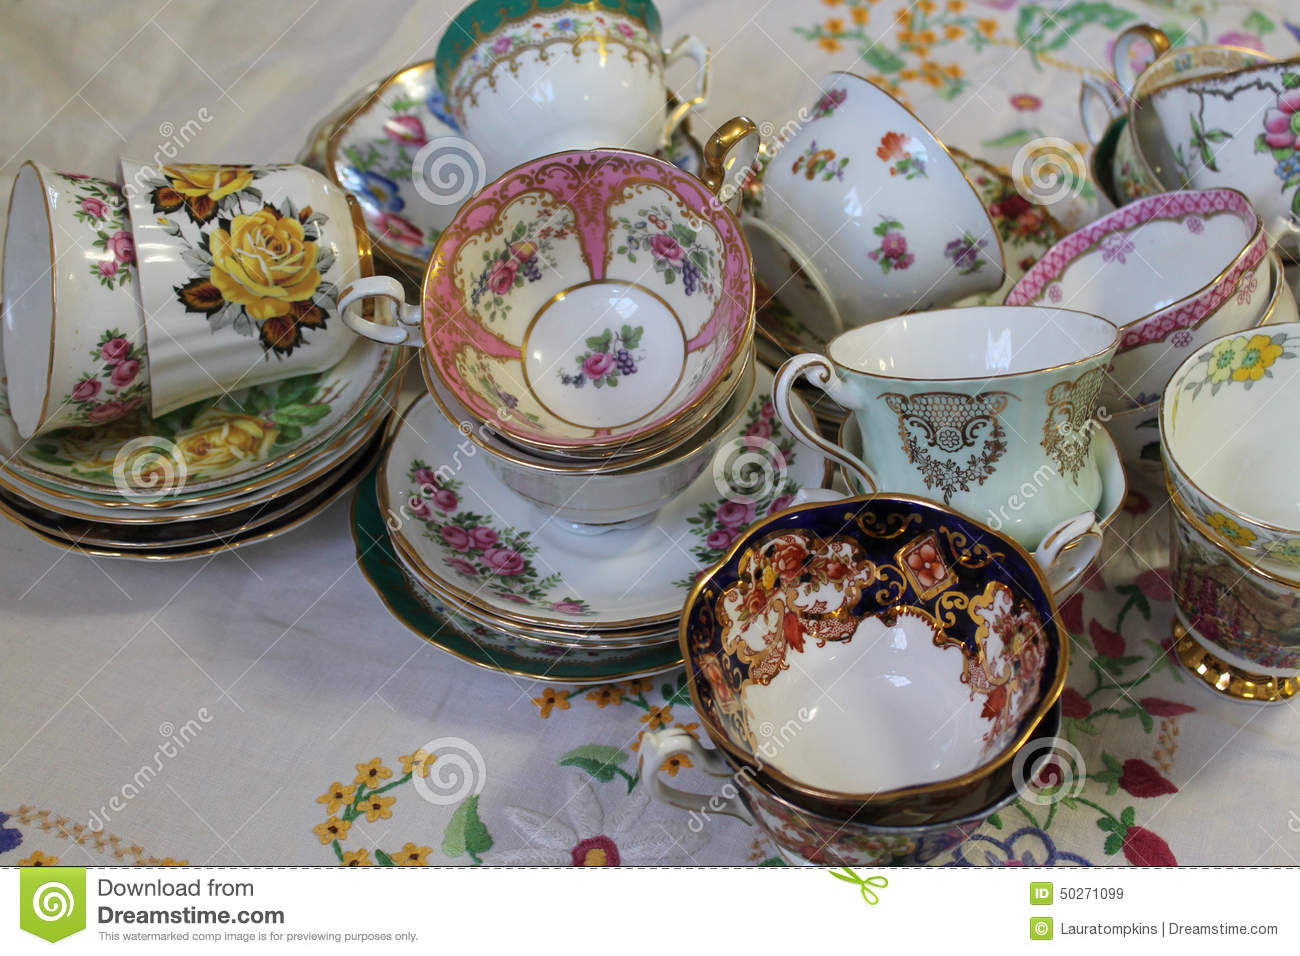 Vintage Teacups And Saucers Stock Photo Image 50271099